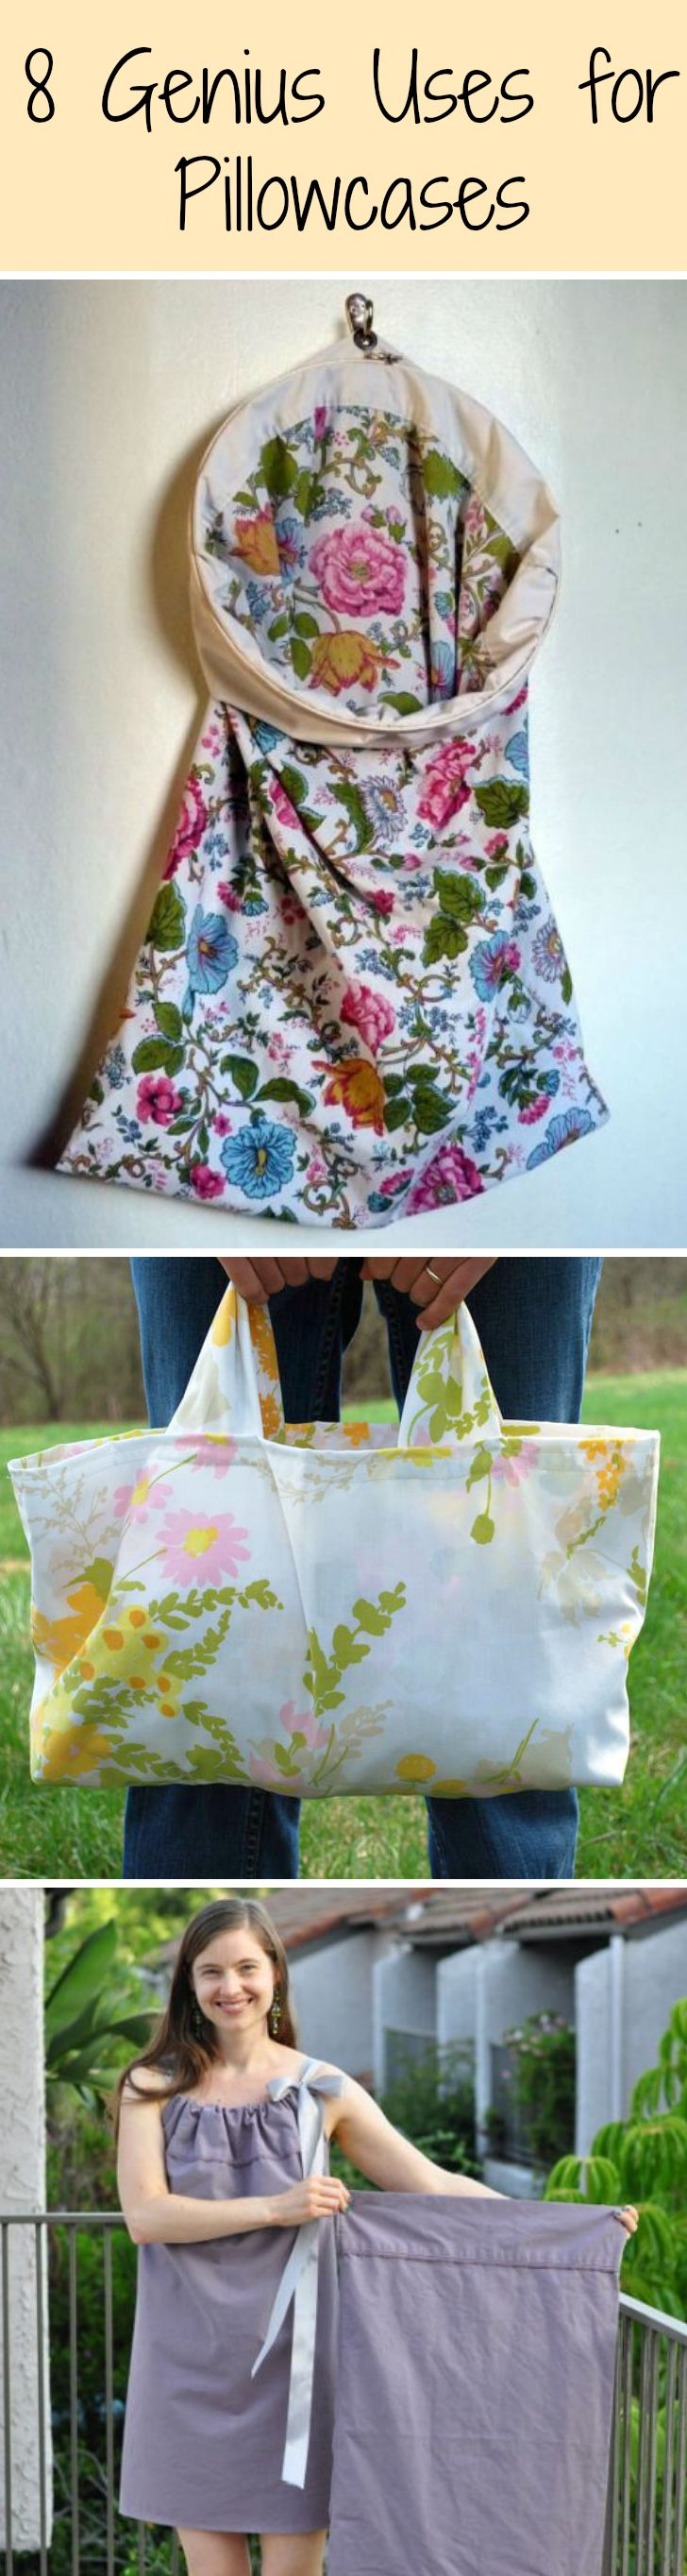 Cheap white pillowcases for crafts - 8 Handy Things You Can Do With A Pillowcase